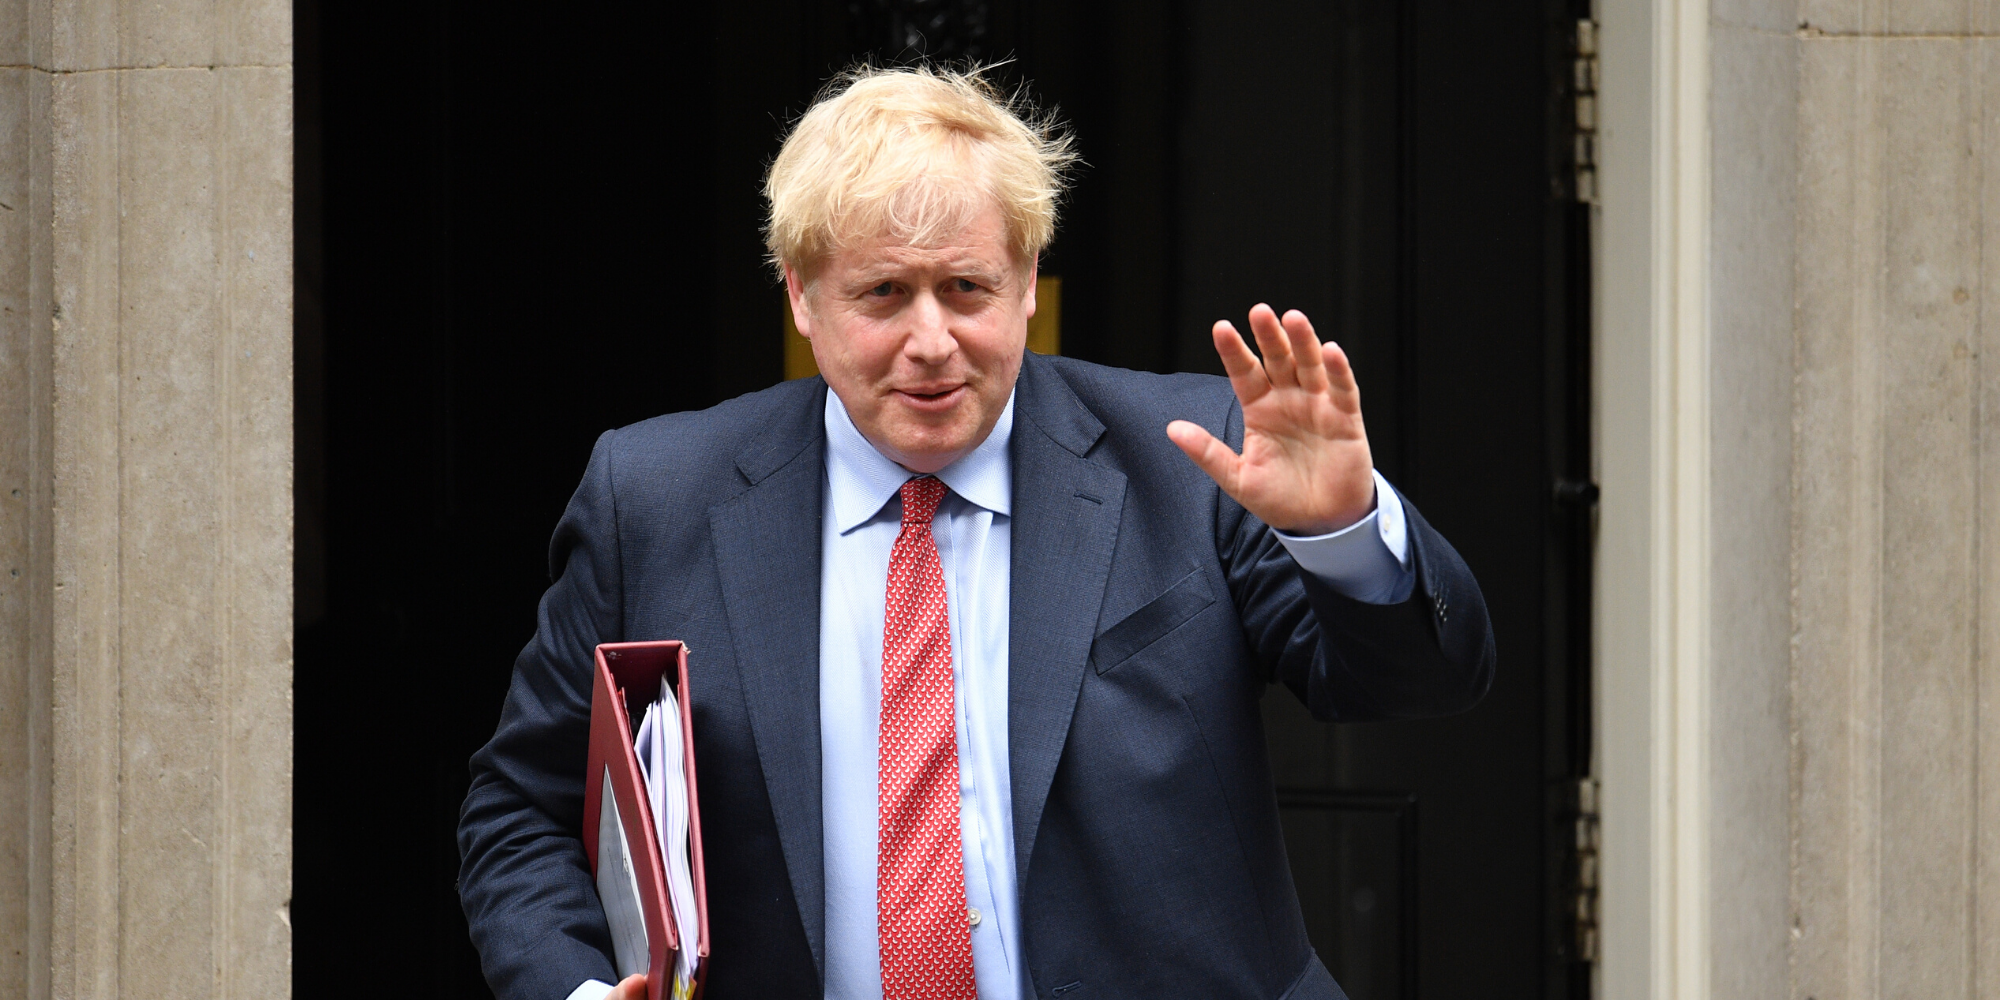 Boris Johnson asked the public to send him questions and it went very, very badly